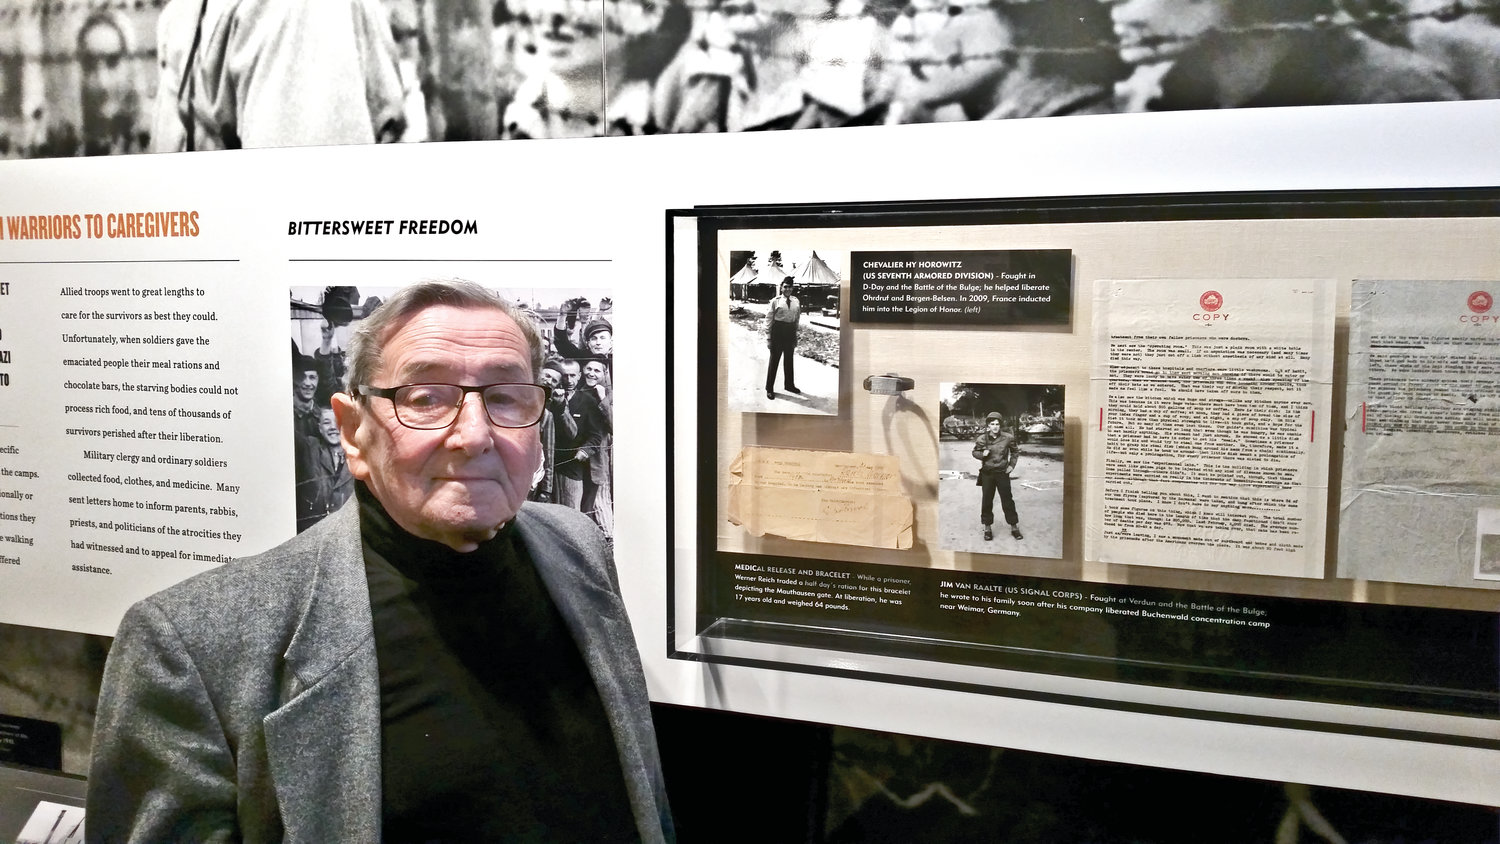 Reich has a few mementos of his past at the Holocaust Memorial and Tolerance Center in Glen Cove.